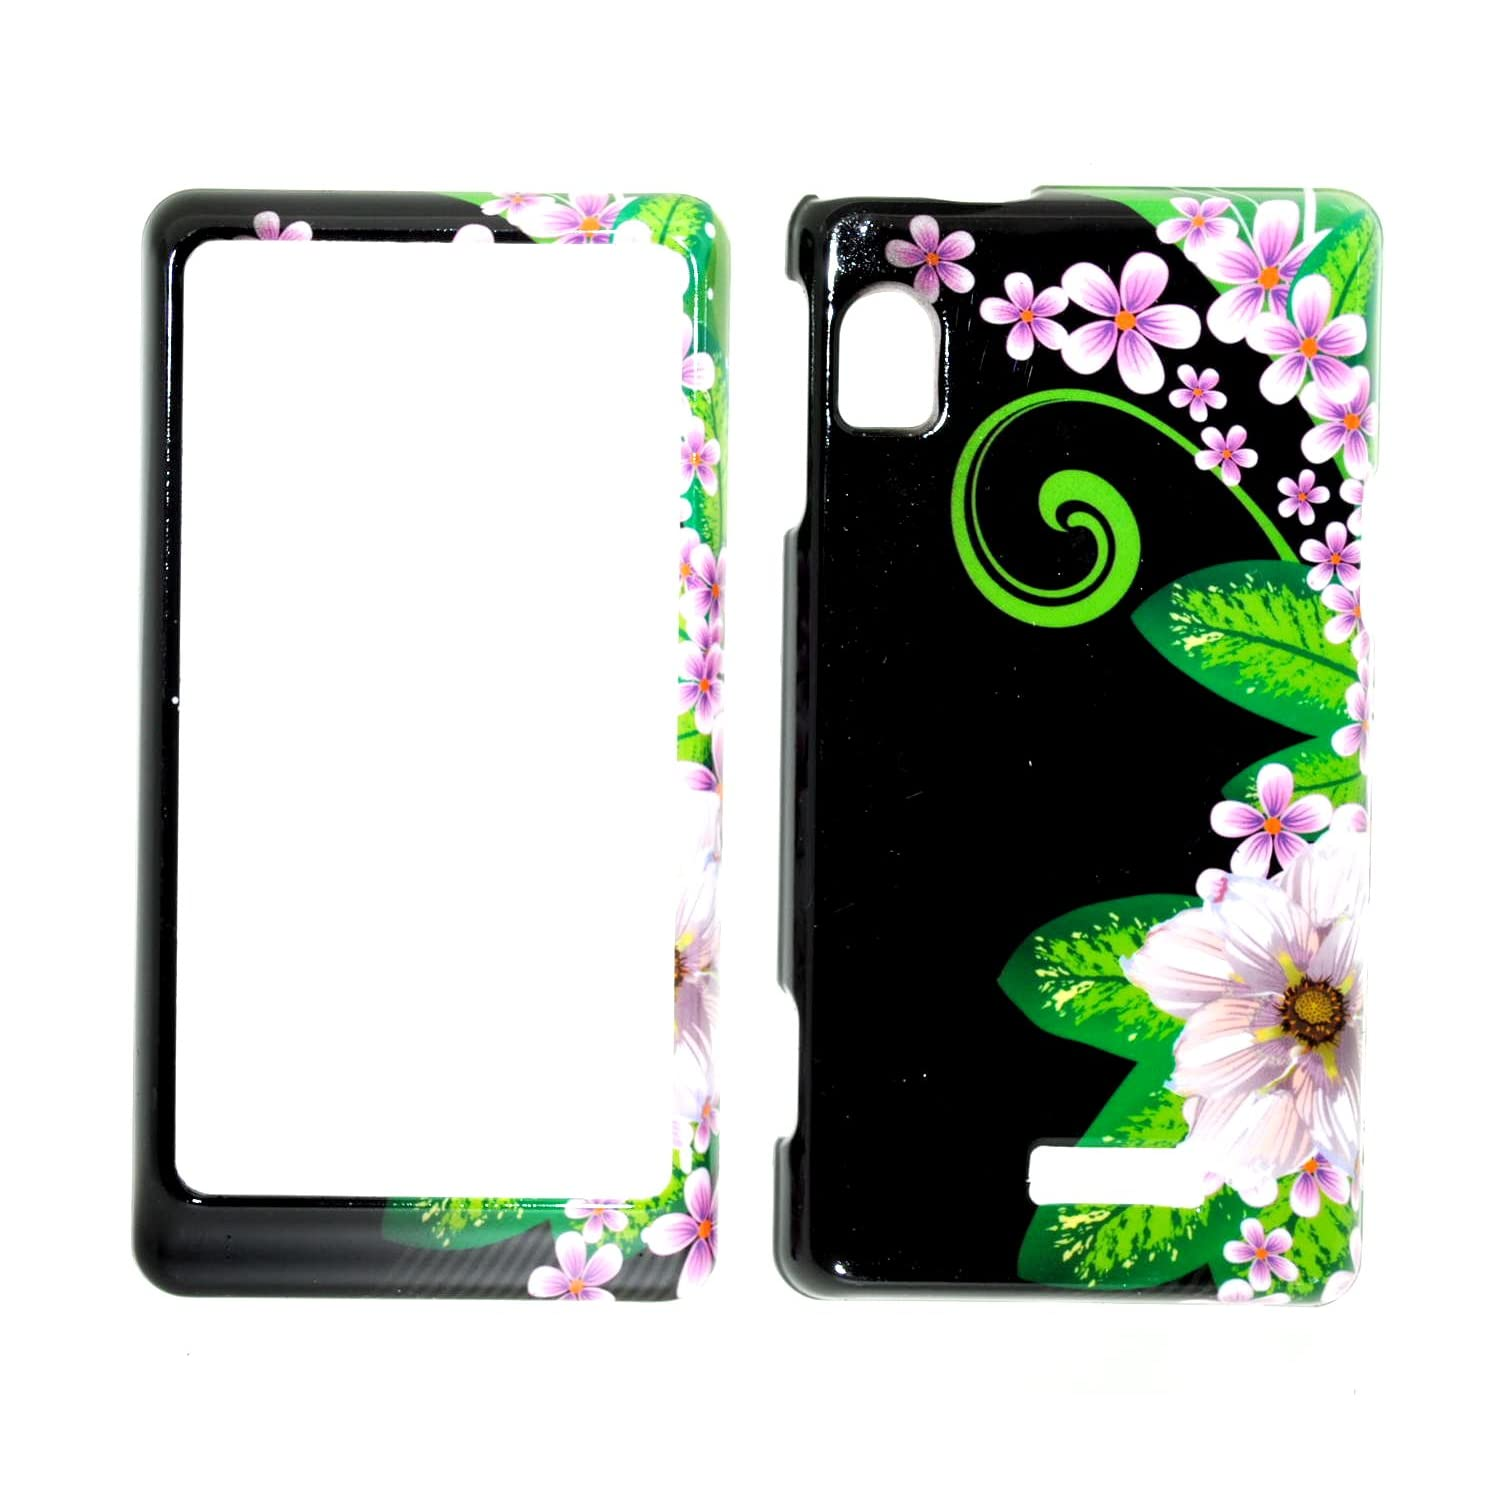 Jungle Flower w/ Pink Sakura Droid 2 A955 - Front